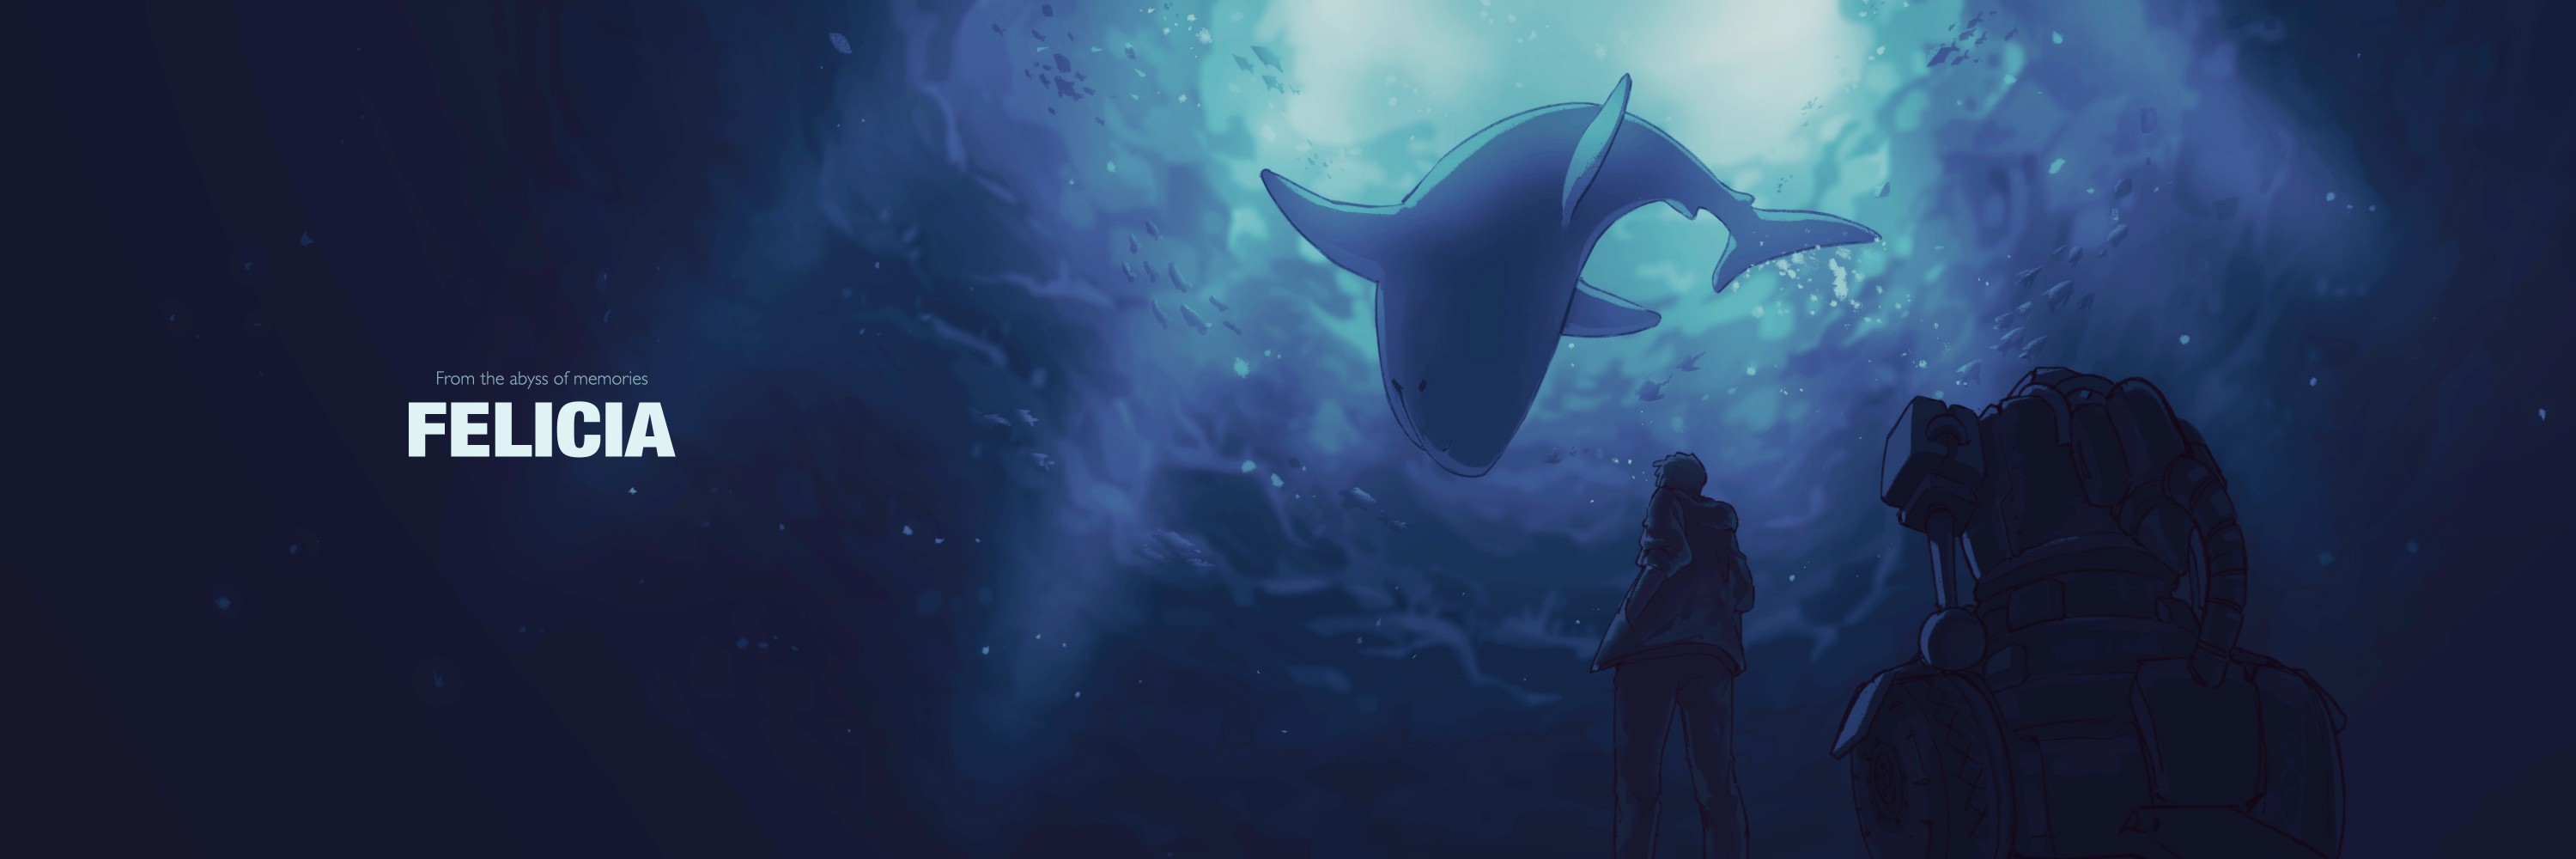 Ty and Felicia the great white shark, looking at each other in a surreal scene under the sea abyss. Light shines from behind Felicia and falls dark as it goes deeper.